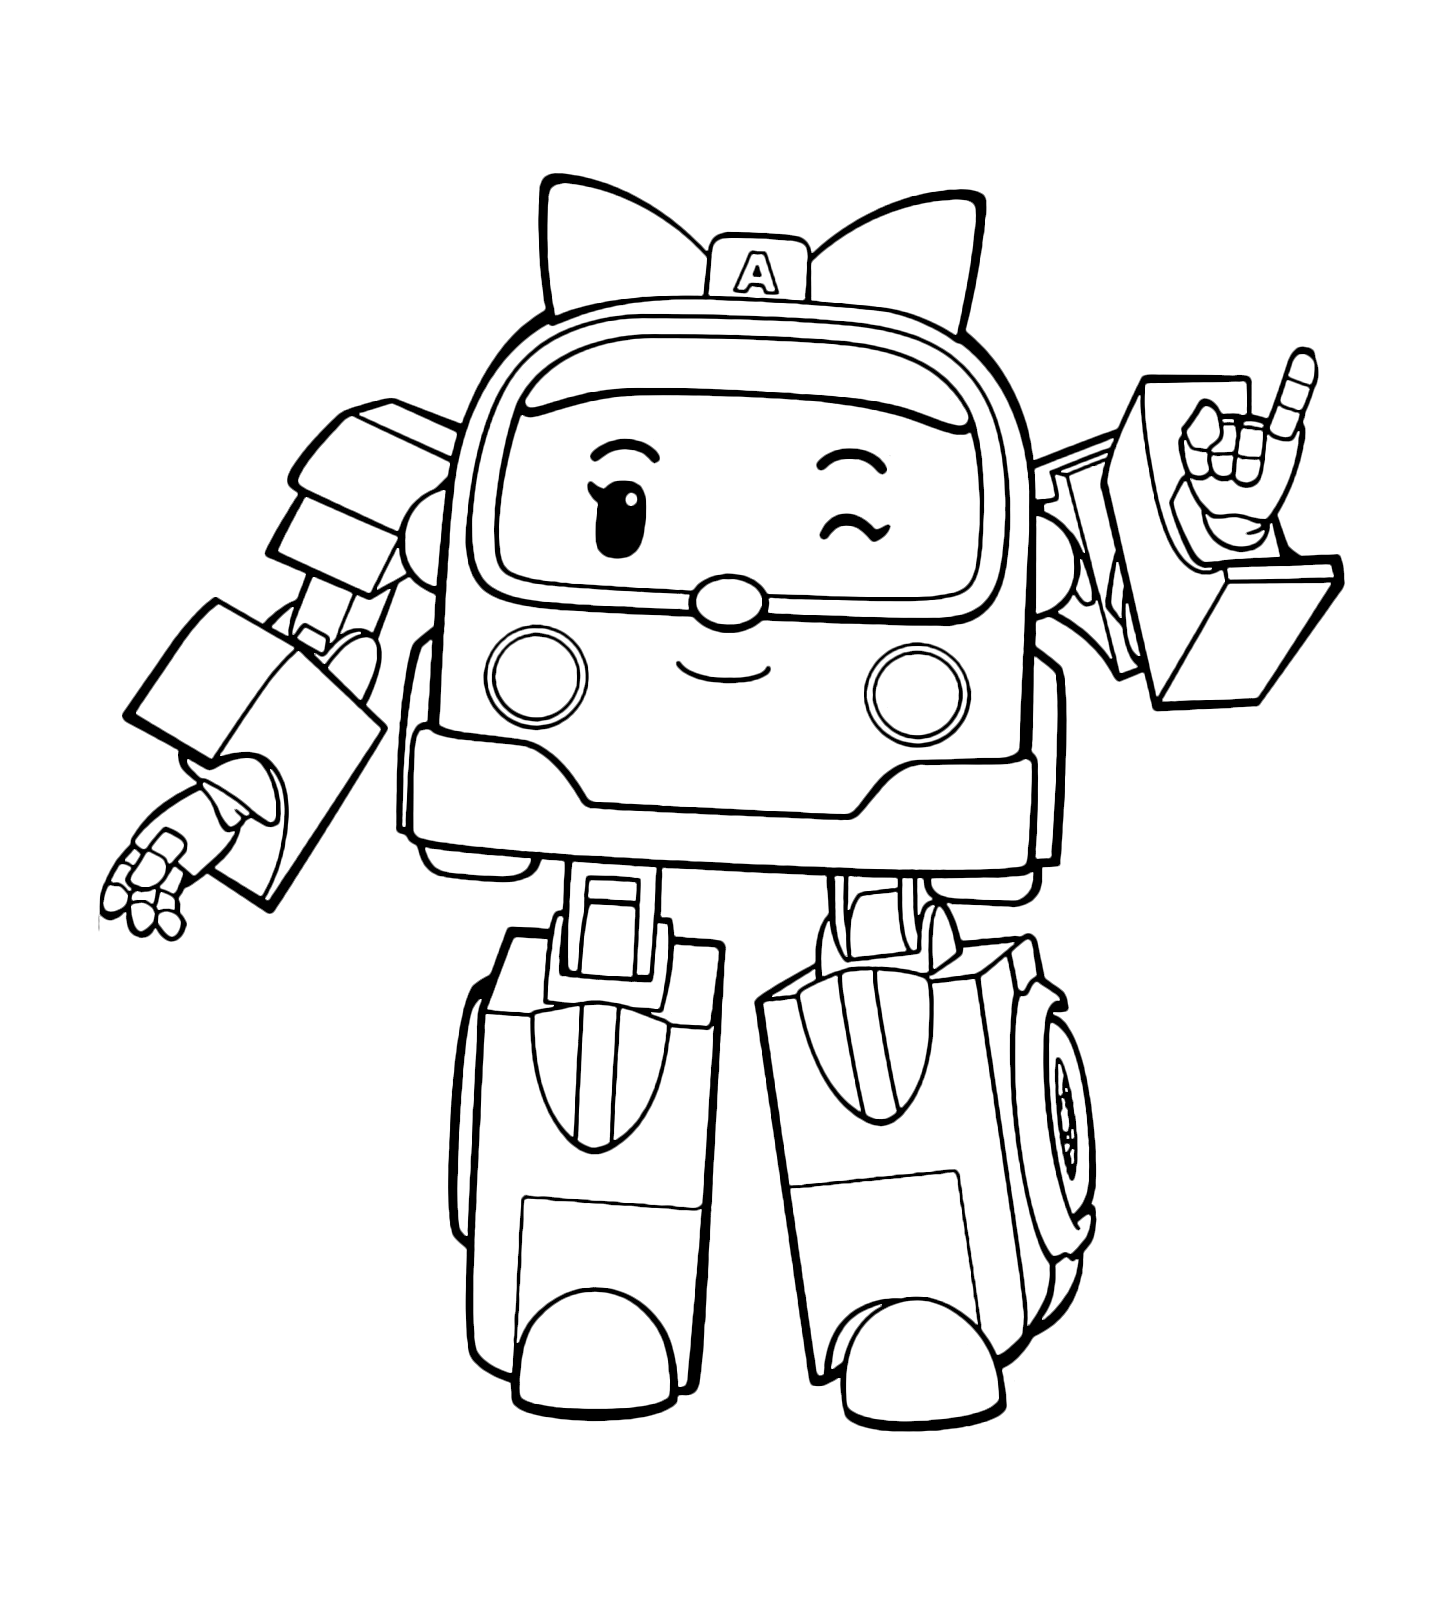 super colouring pages super wings coloring pages best coloring pages for kids colouring pages super